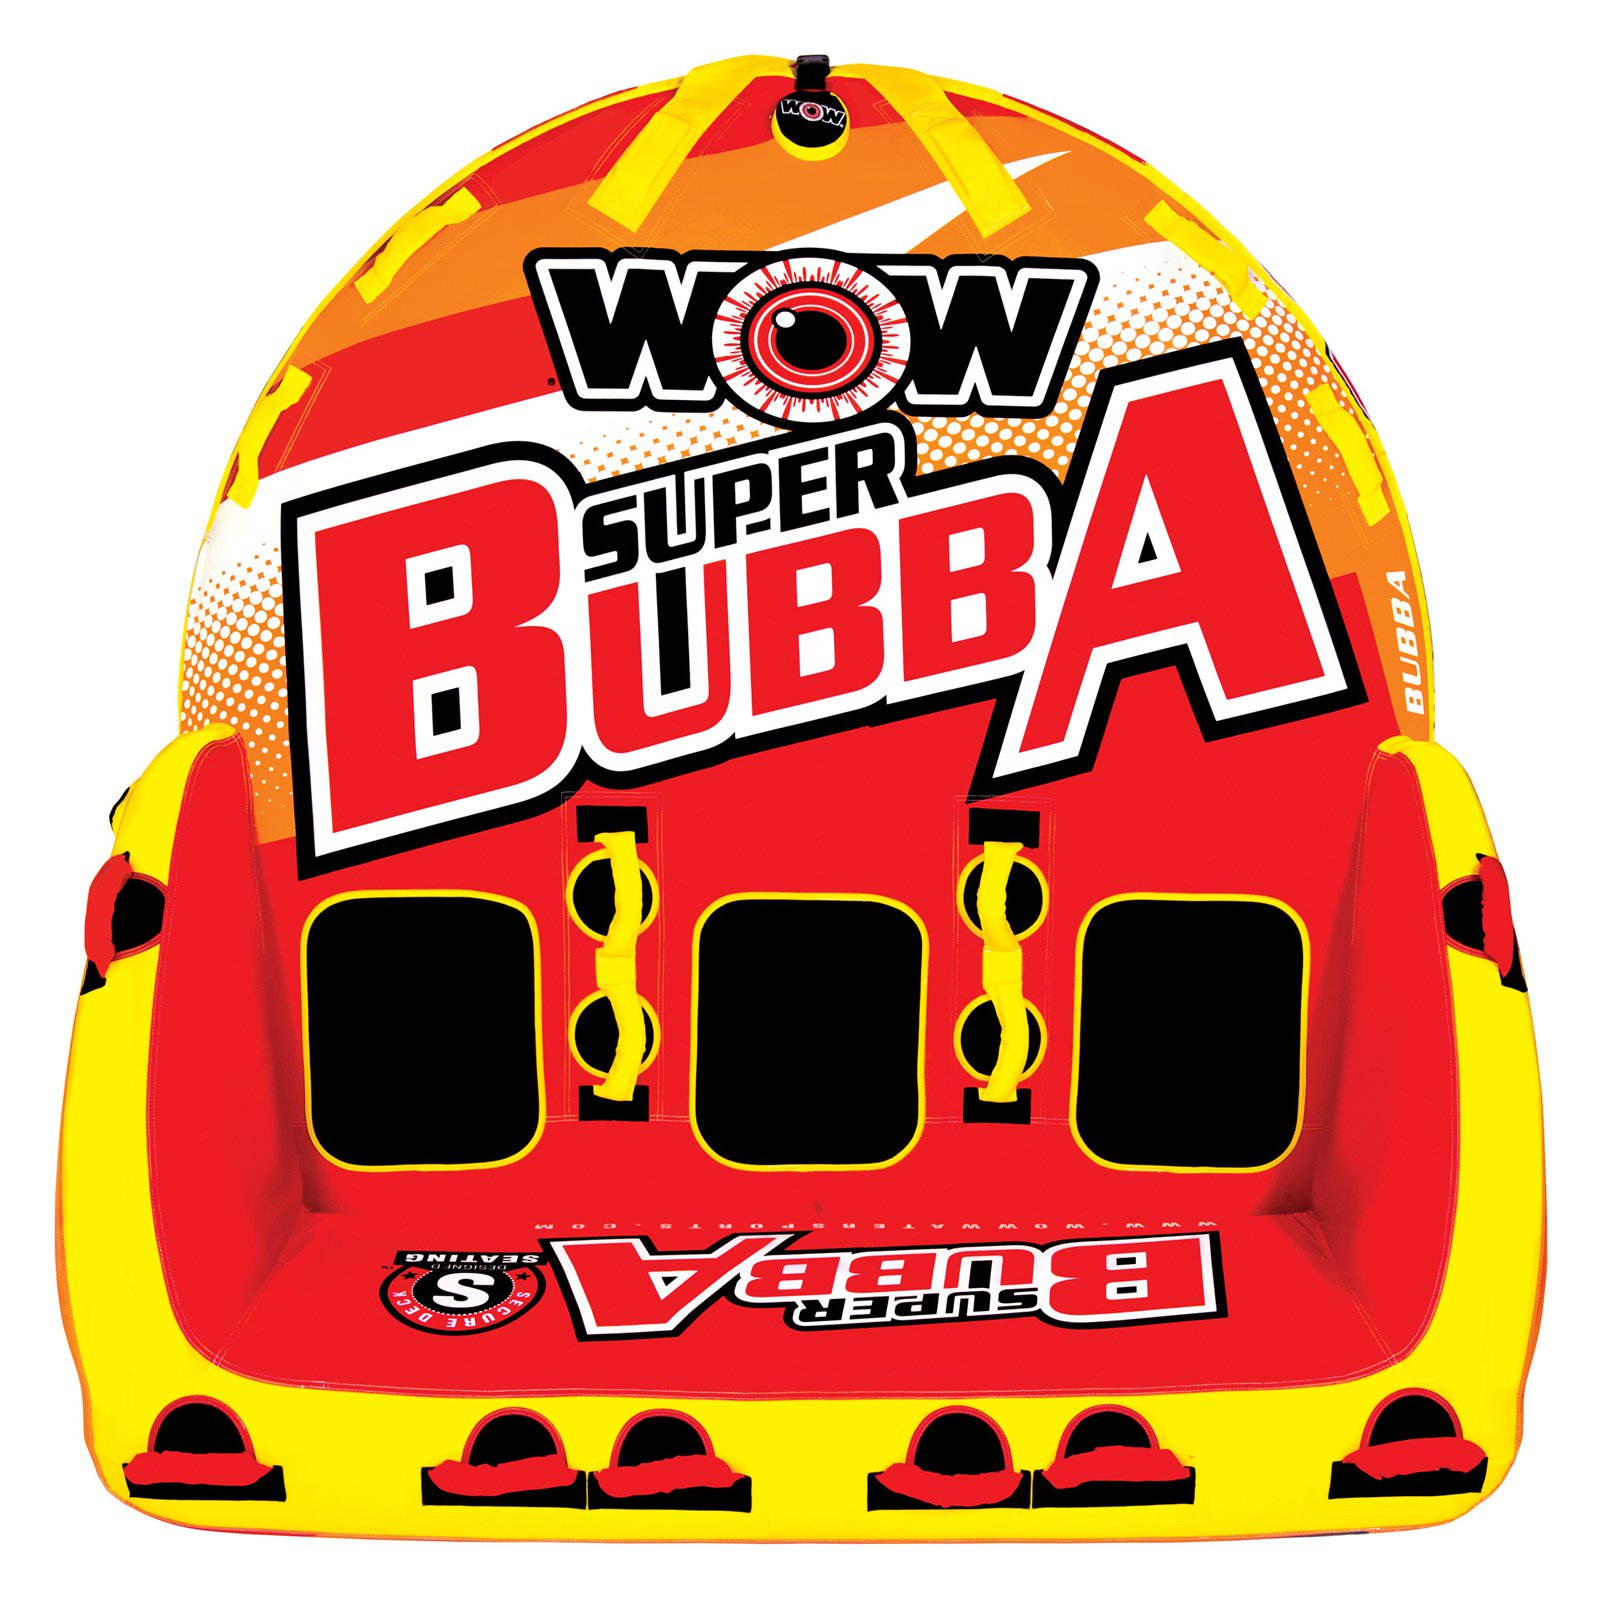 WOW 171060 Super Bubba Hi-Vis Inflatable Towable for 1-3 Riders